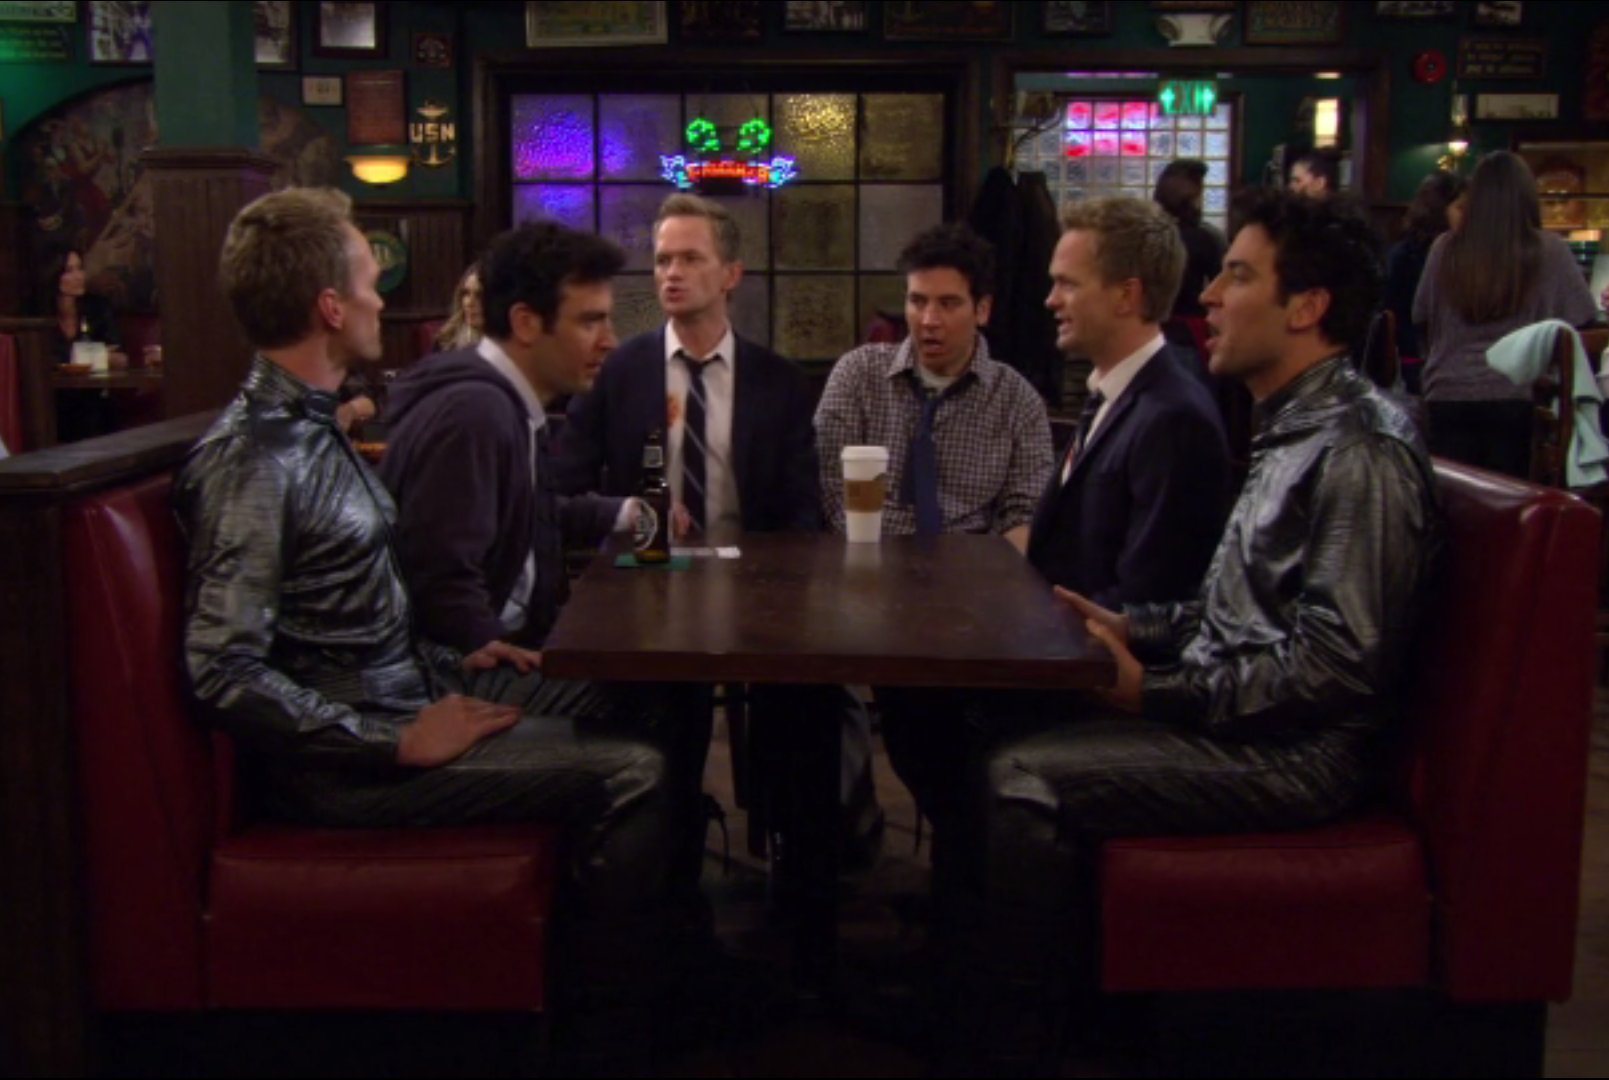 How I Met Your Mother - 08x20 - The Time Travelers